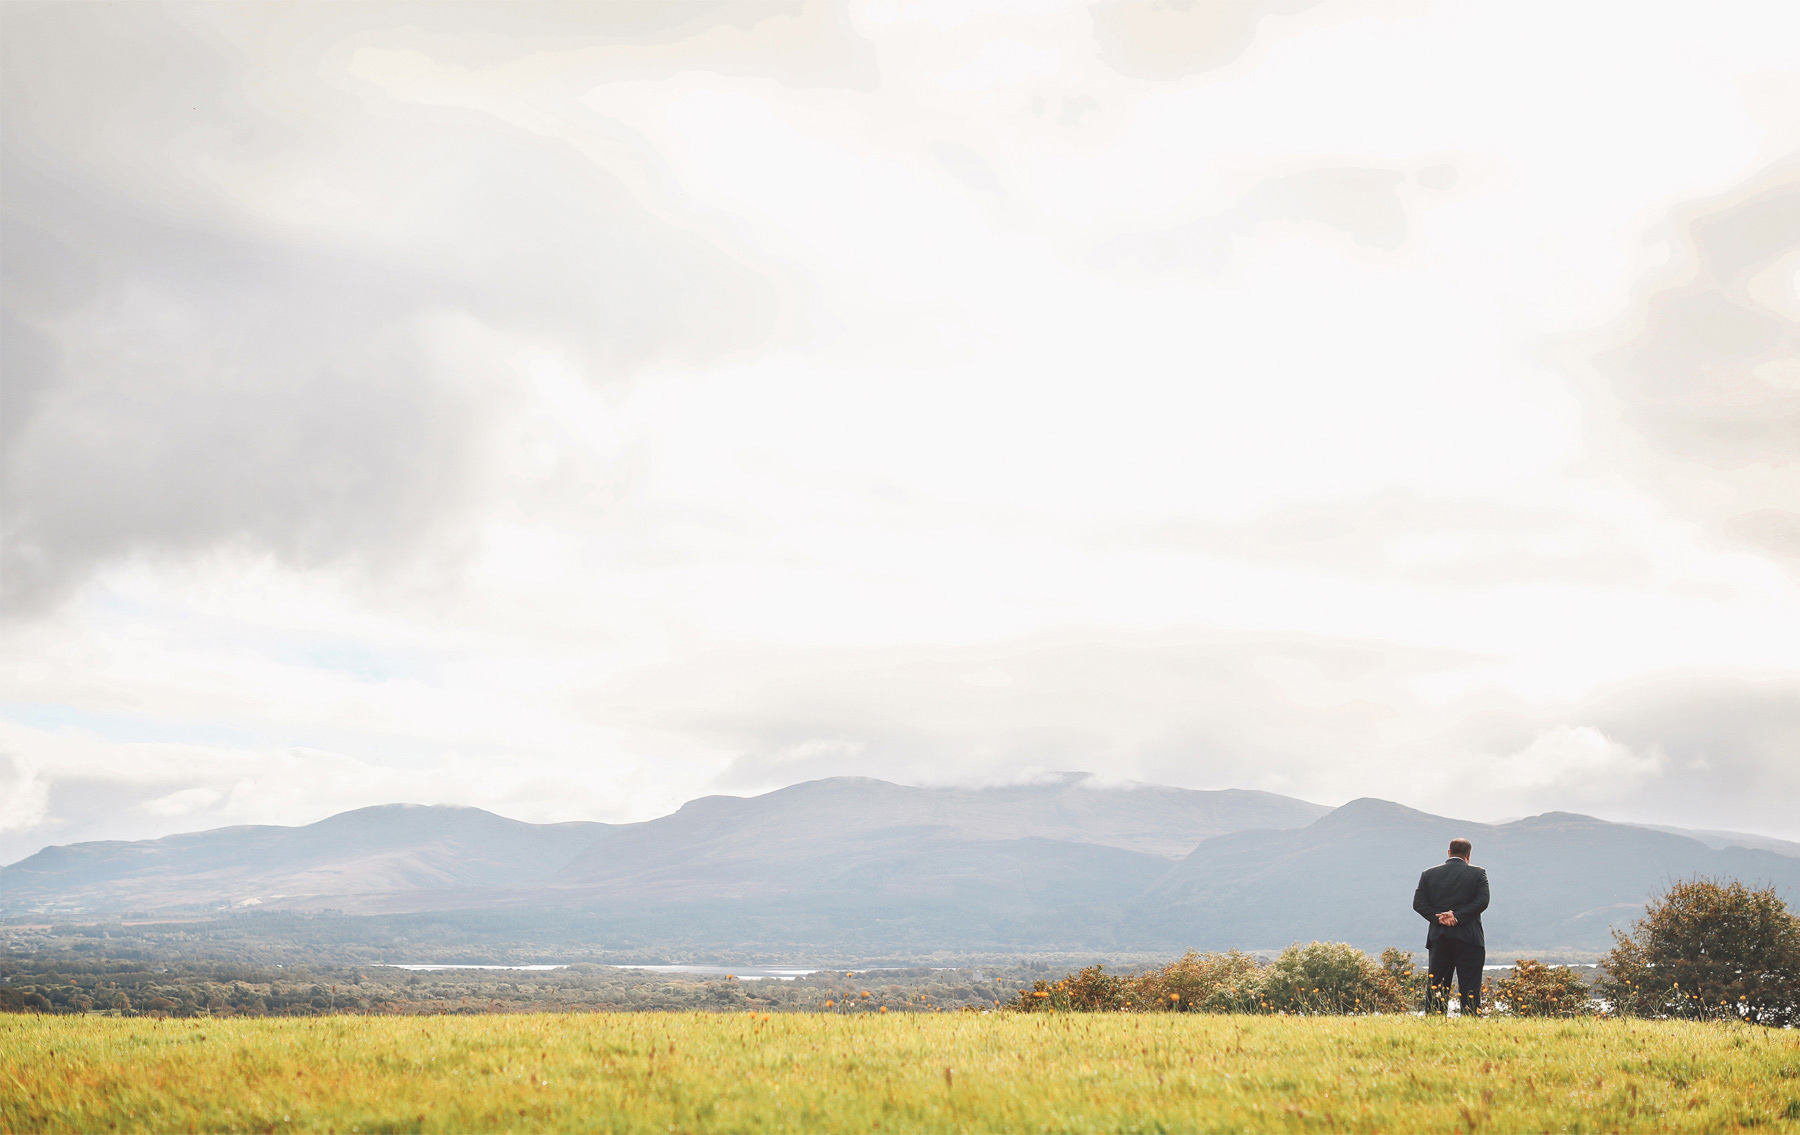 20-Kilarney-Ireland-Wedding-Photographer-by-Andrew-Vick-Photography-Fall-Autumn-Destination-First-Meeting-Look-Groom-Landscape-Village-Field-Vintage-Becca-and-Donal.jpg